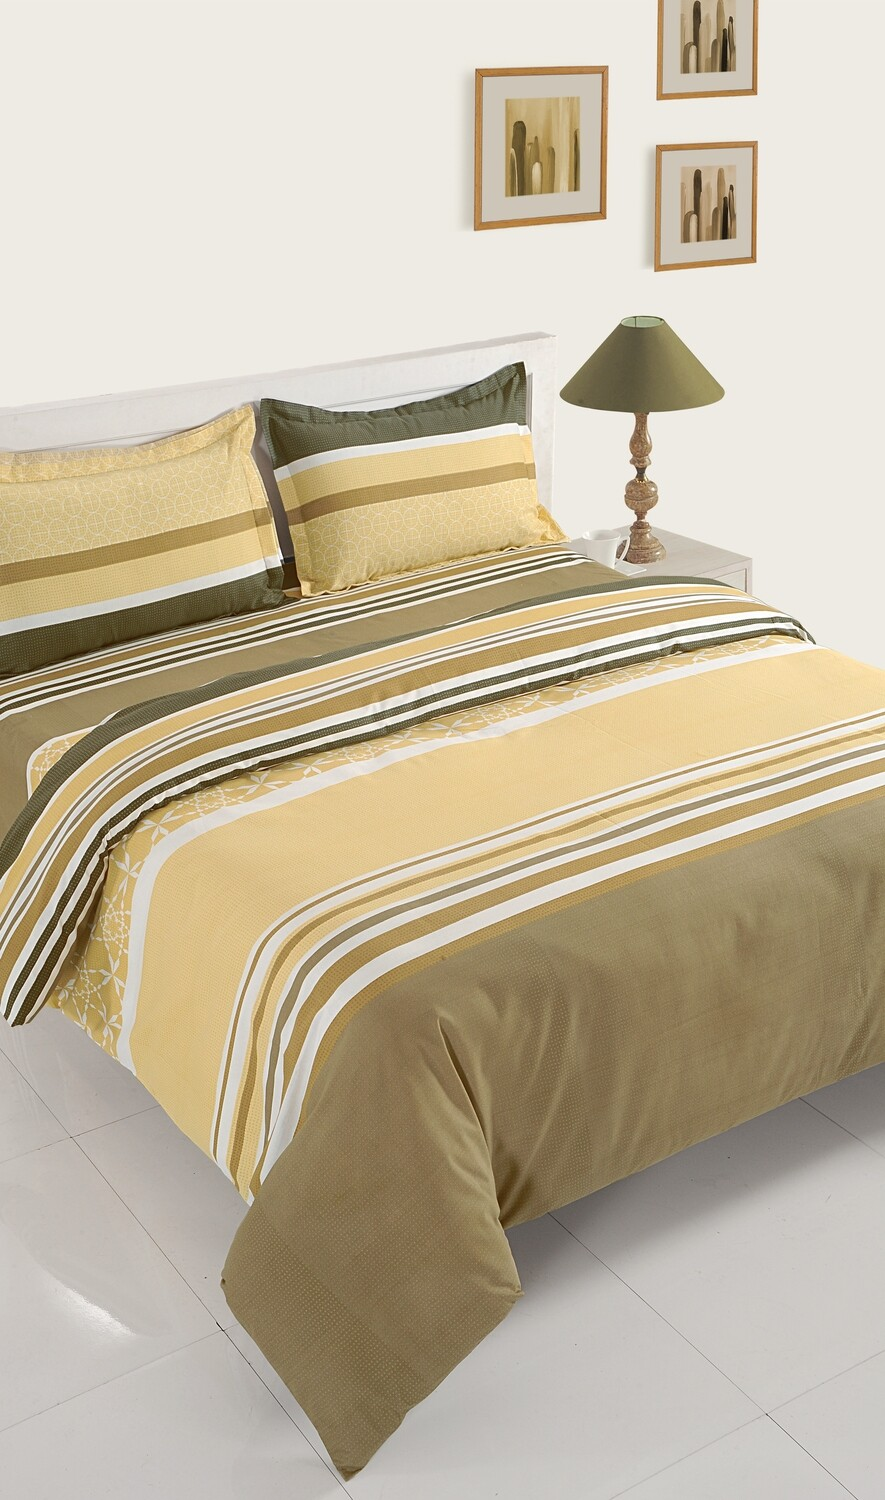 Swayam Ochre Strokes of Joy 120 TC Cotton Double Bedsheet with 2 Pillow Covers